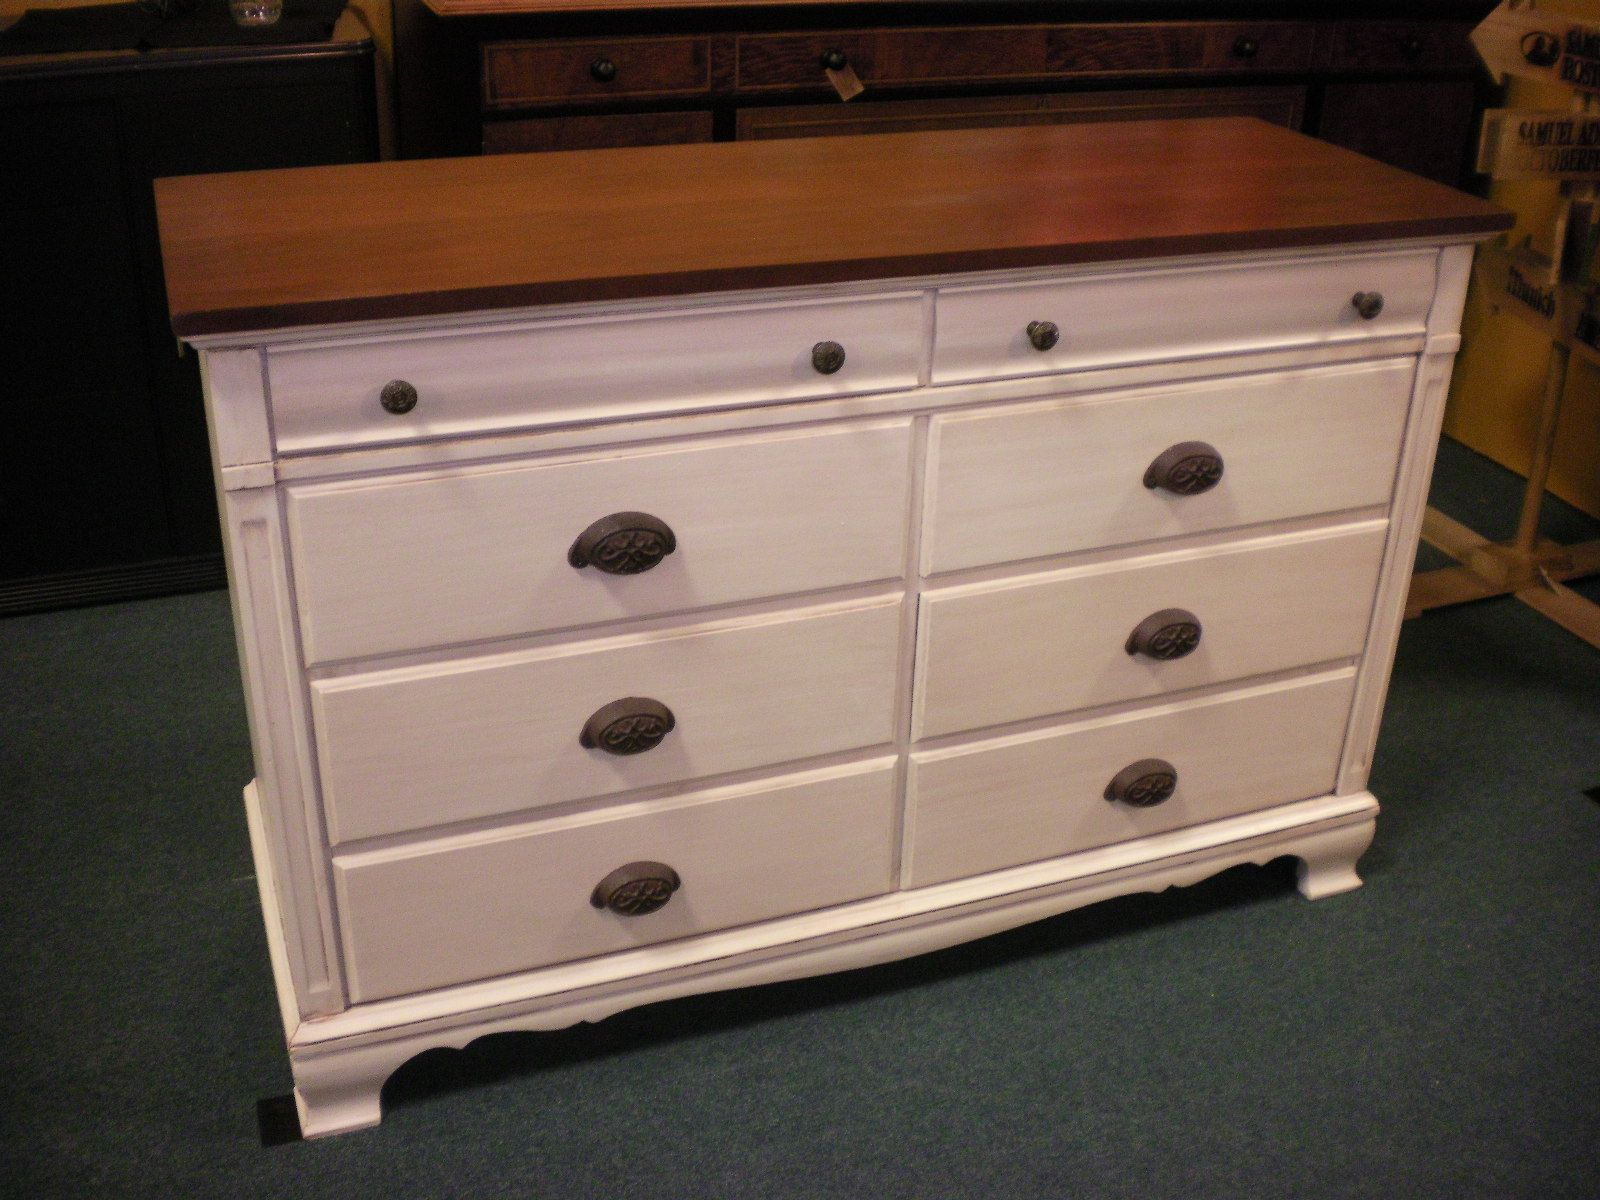 Dresser Painted Navajo White With Brown Glaze And New Hardware The Mahogany Top Was Red